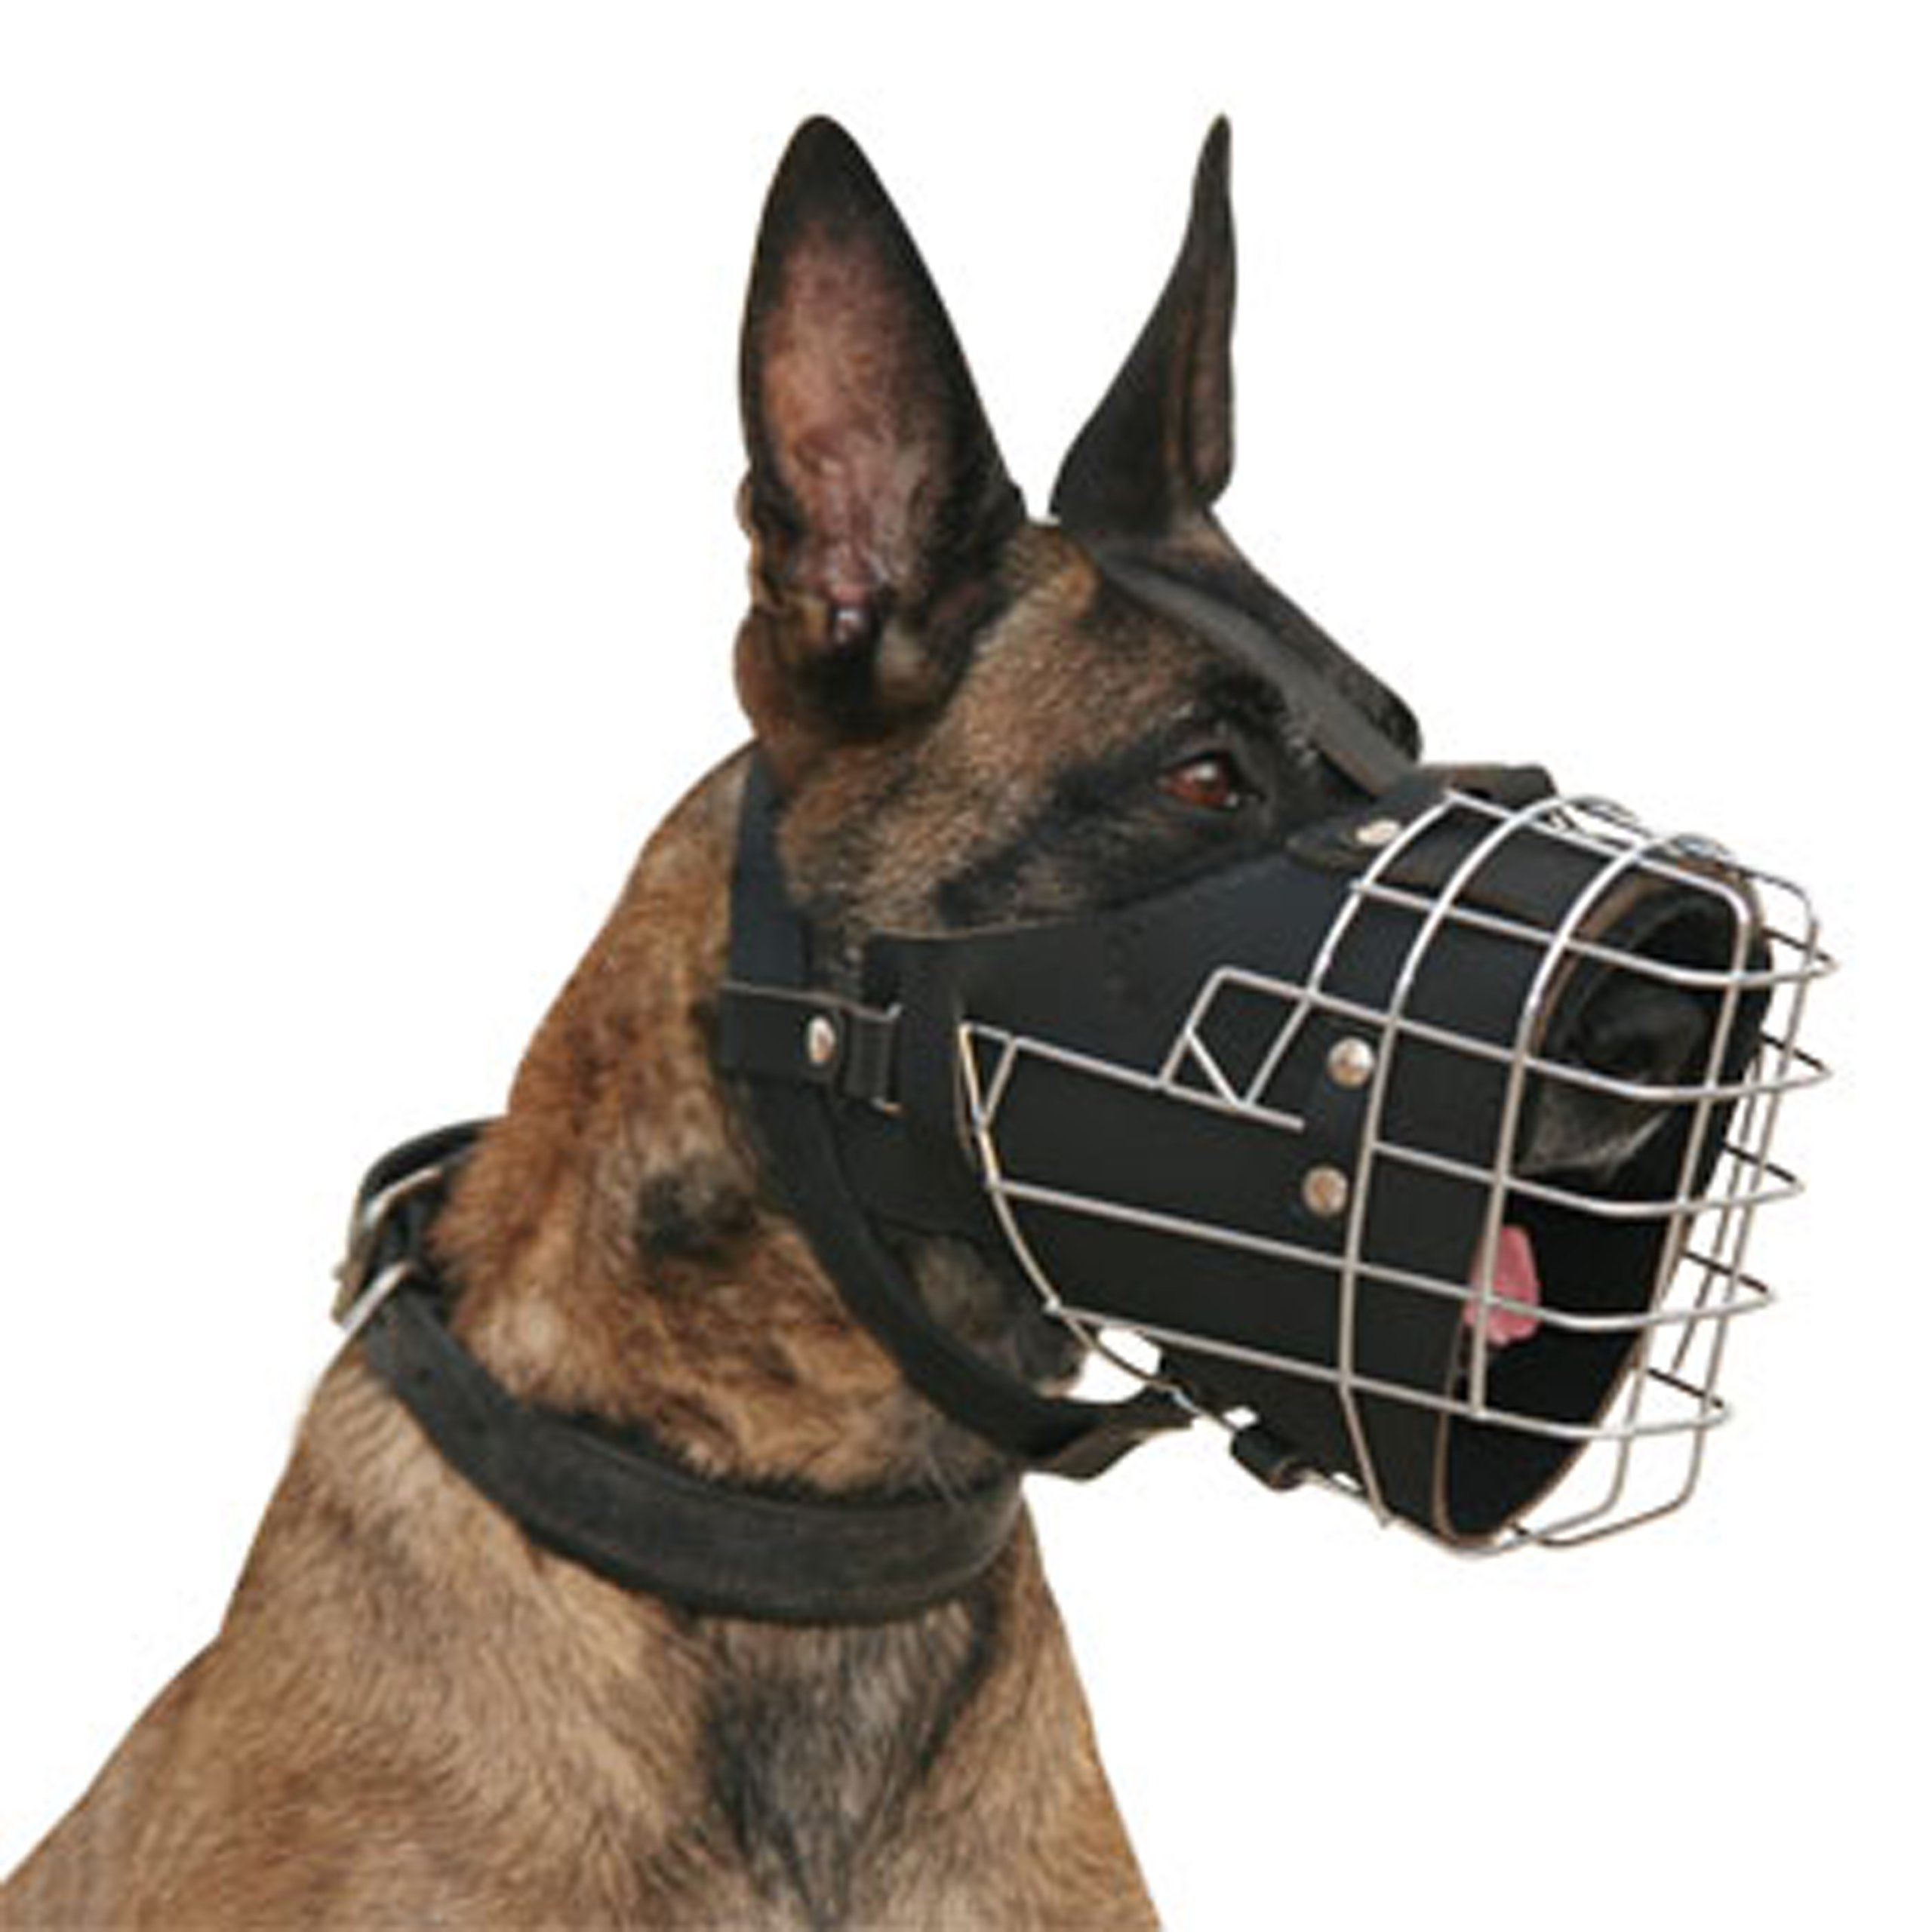 Dean and Tyler DT Freedom Fully Padded Muzzle, Size No. 3 - German Shepherd Male by Dean & Tyler (Image #5)